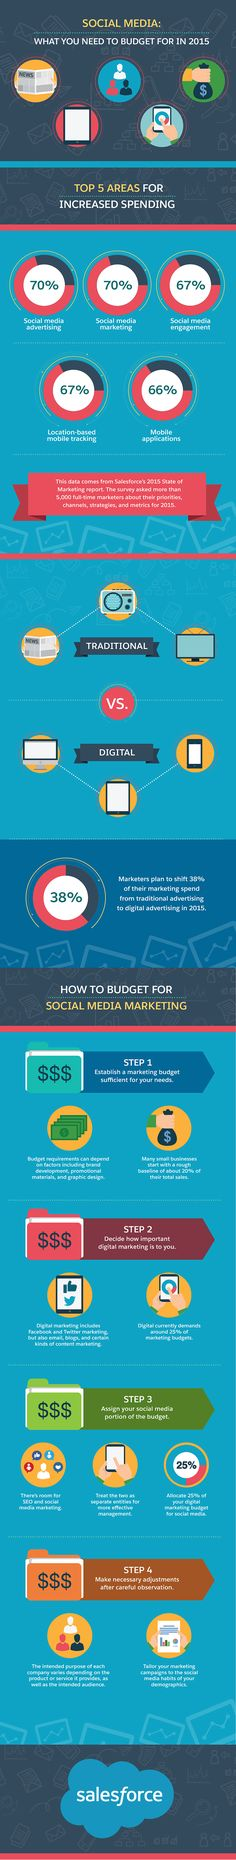 Social Media #Marketing: What You Need To Budget For In 2015 - #infographic